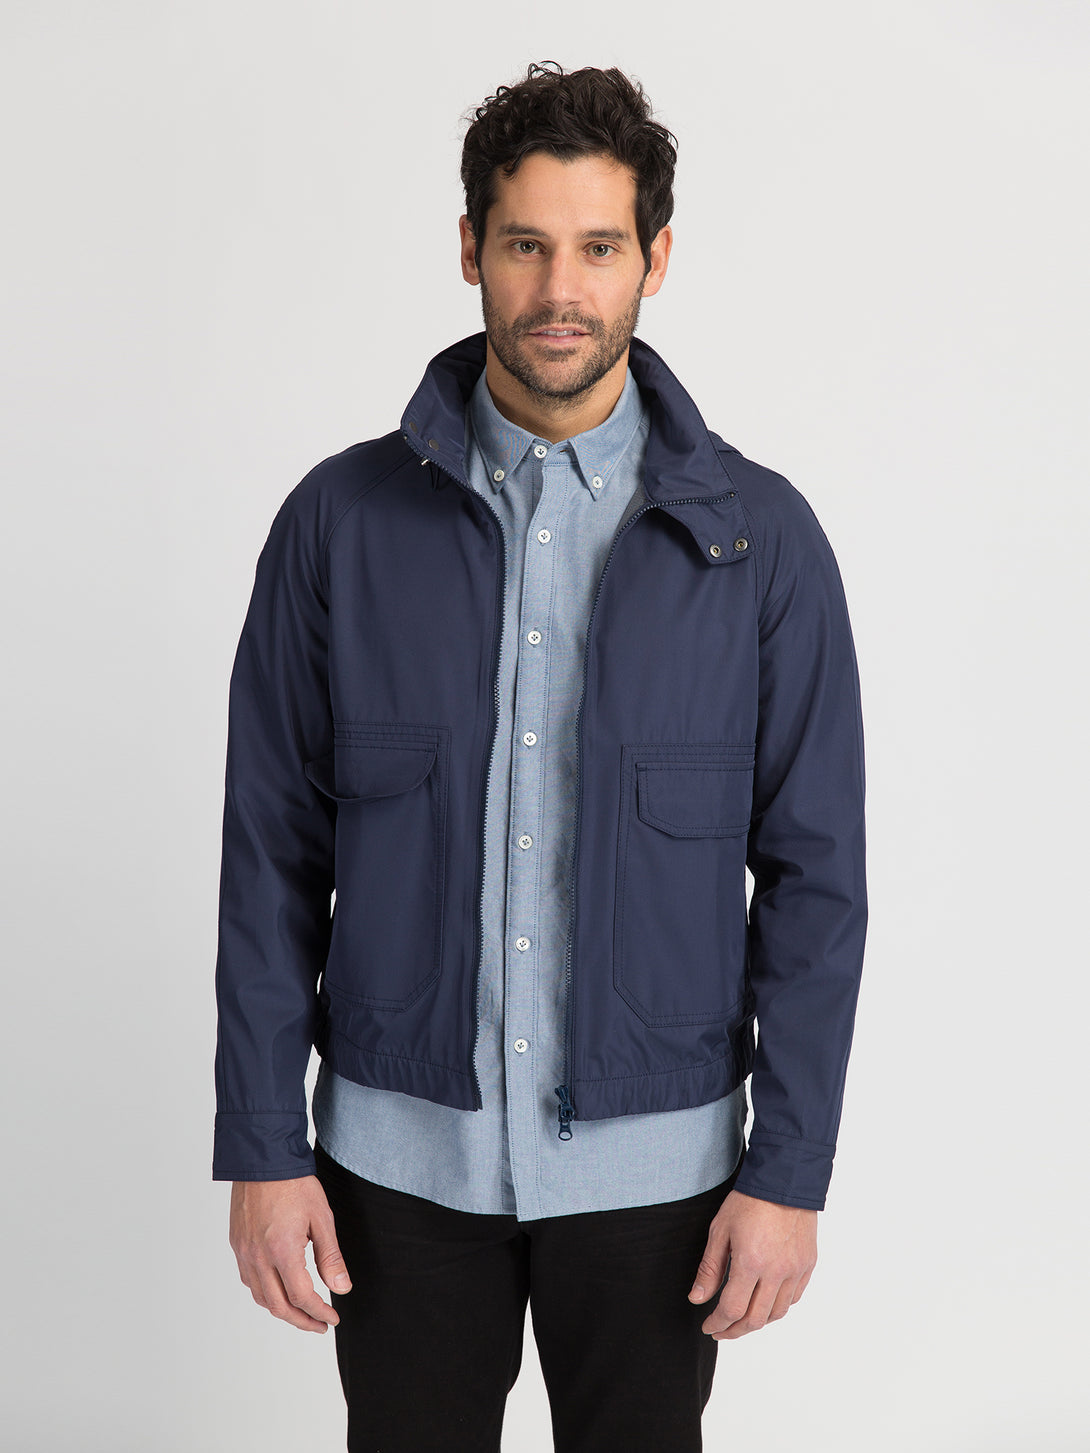 ons garage men's jacket navy